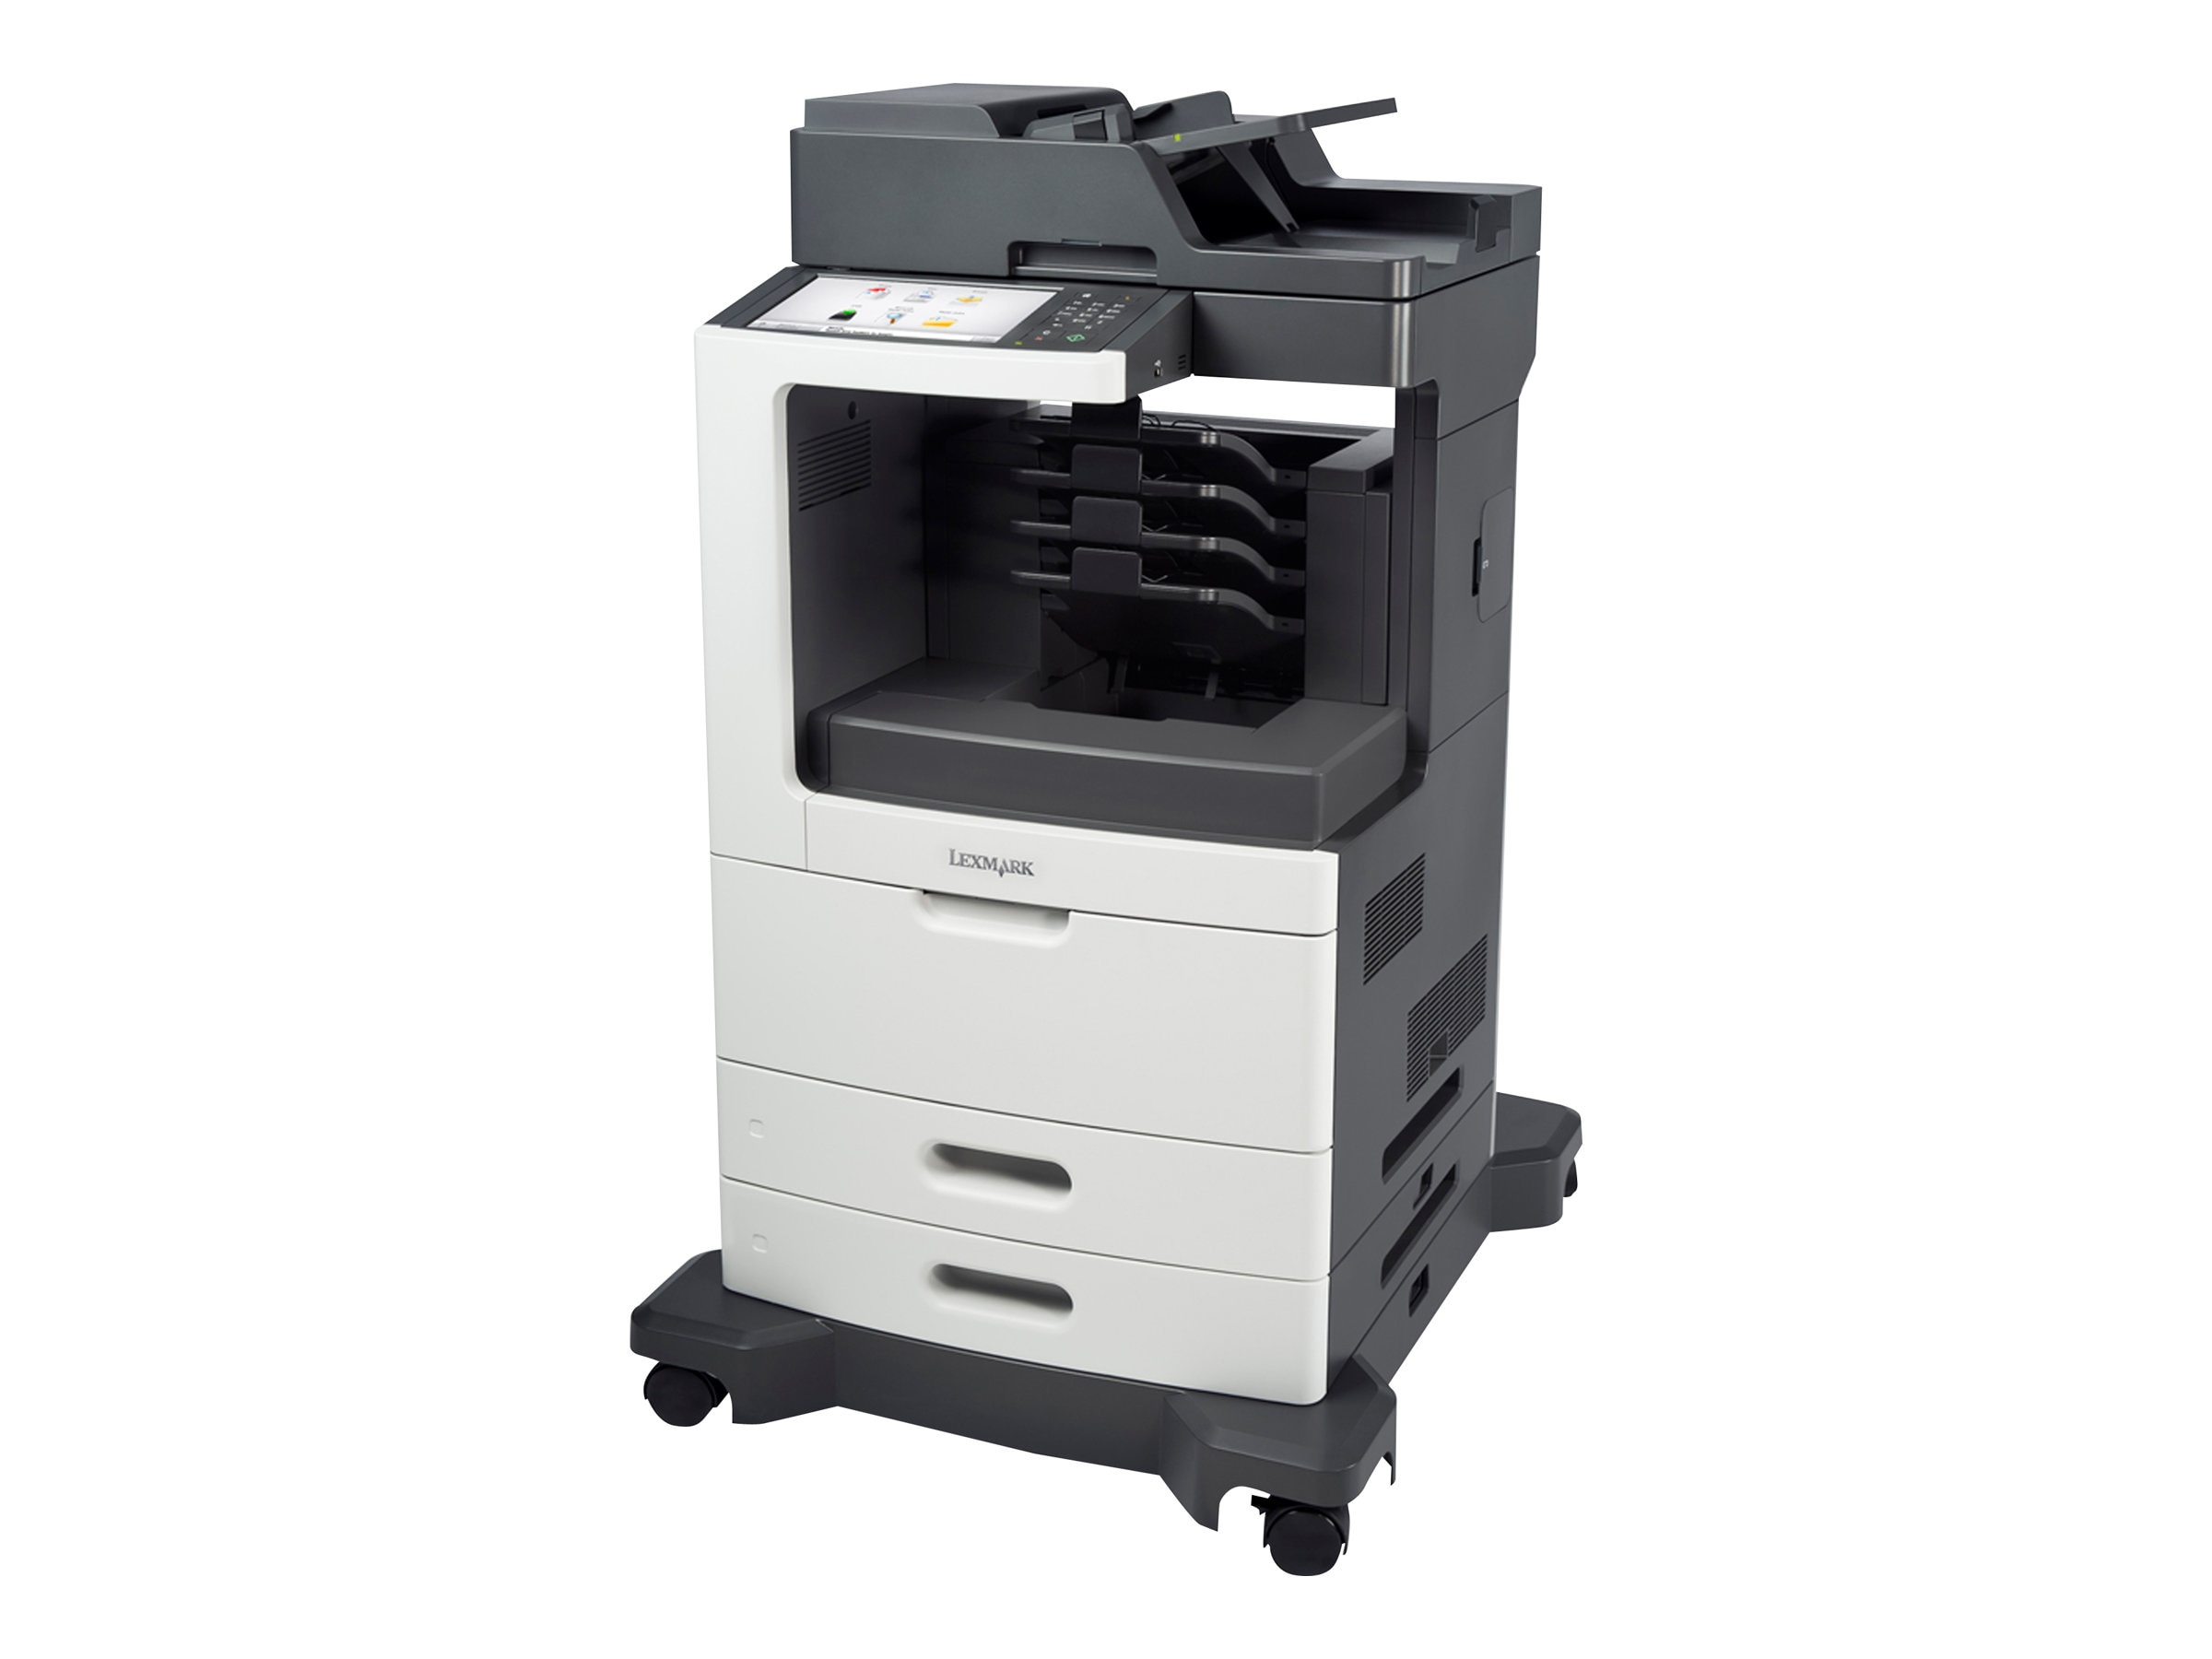 Lexmark MX810dme Monochrome Laser Multifunction Printer, 24TT160